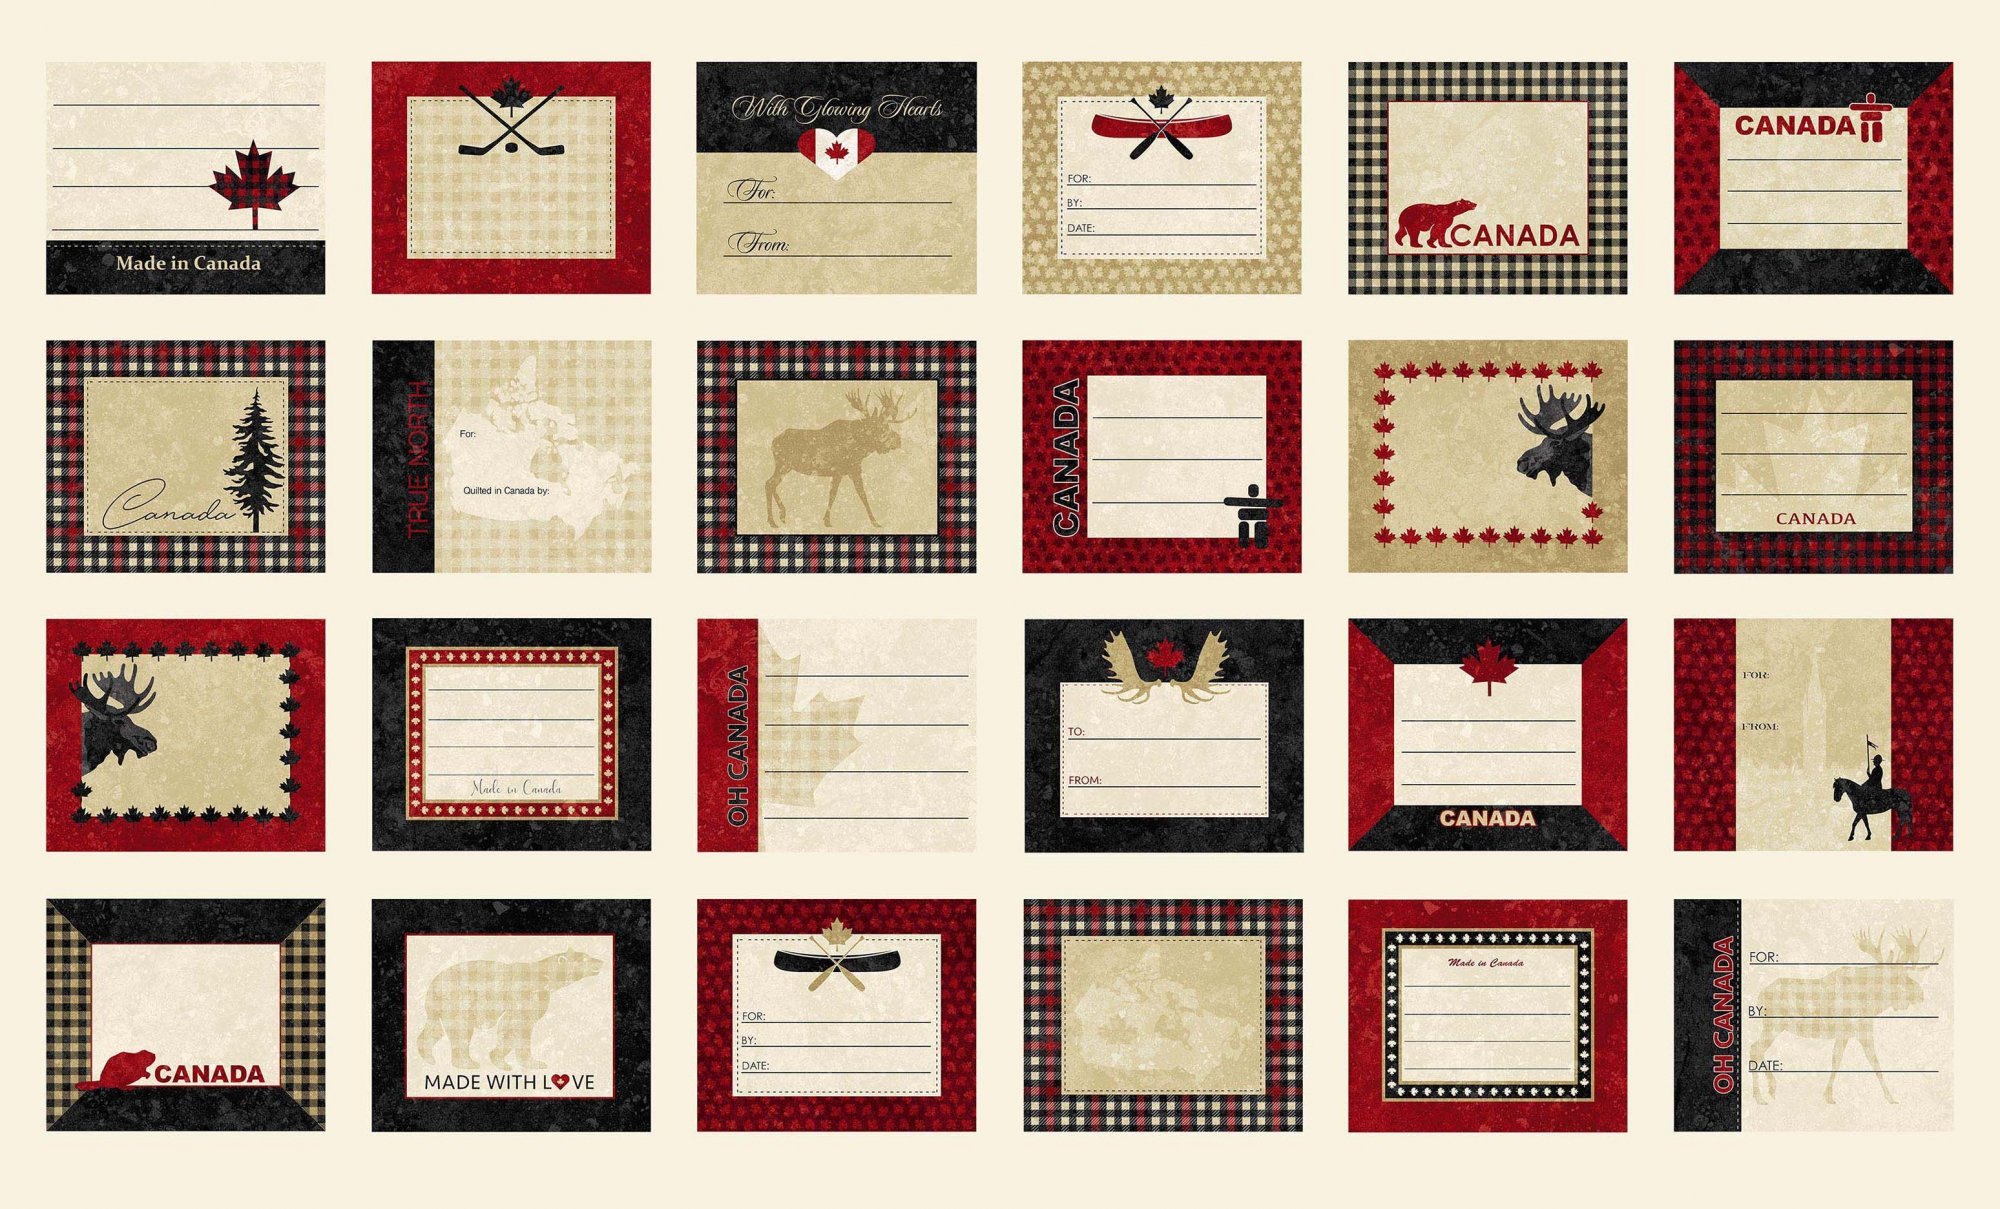 Oh Canada 8 - Stonehenge Quilt Labels